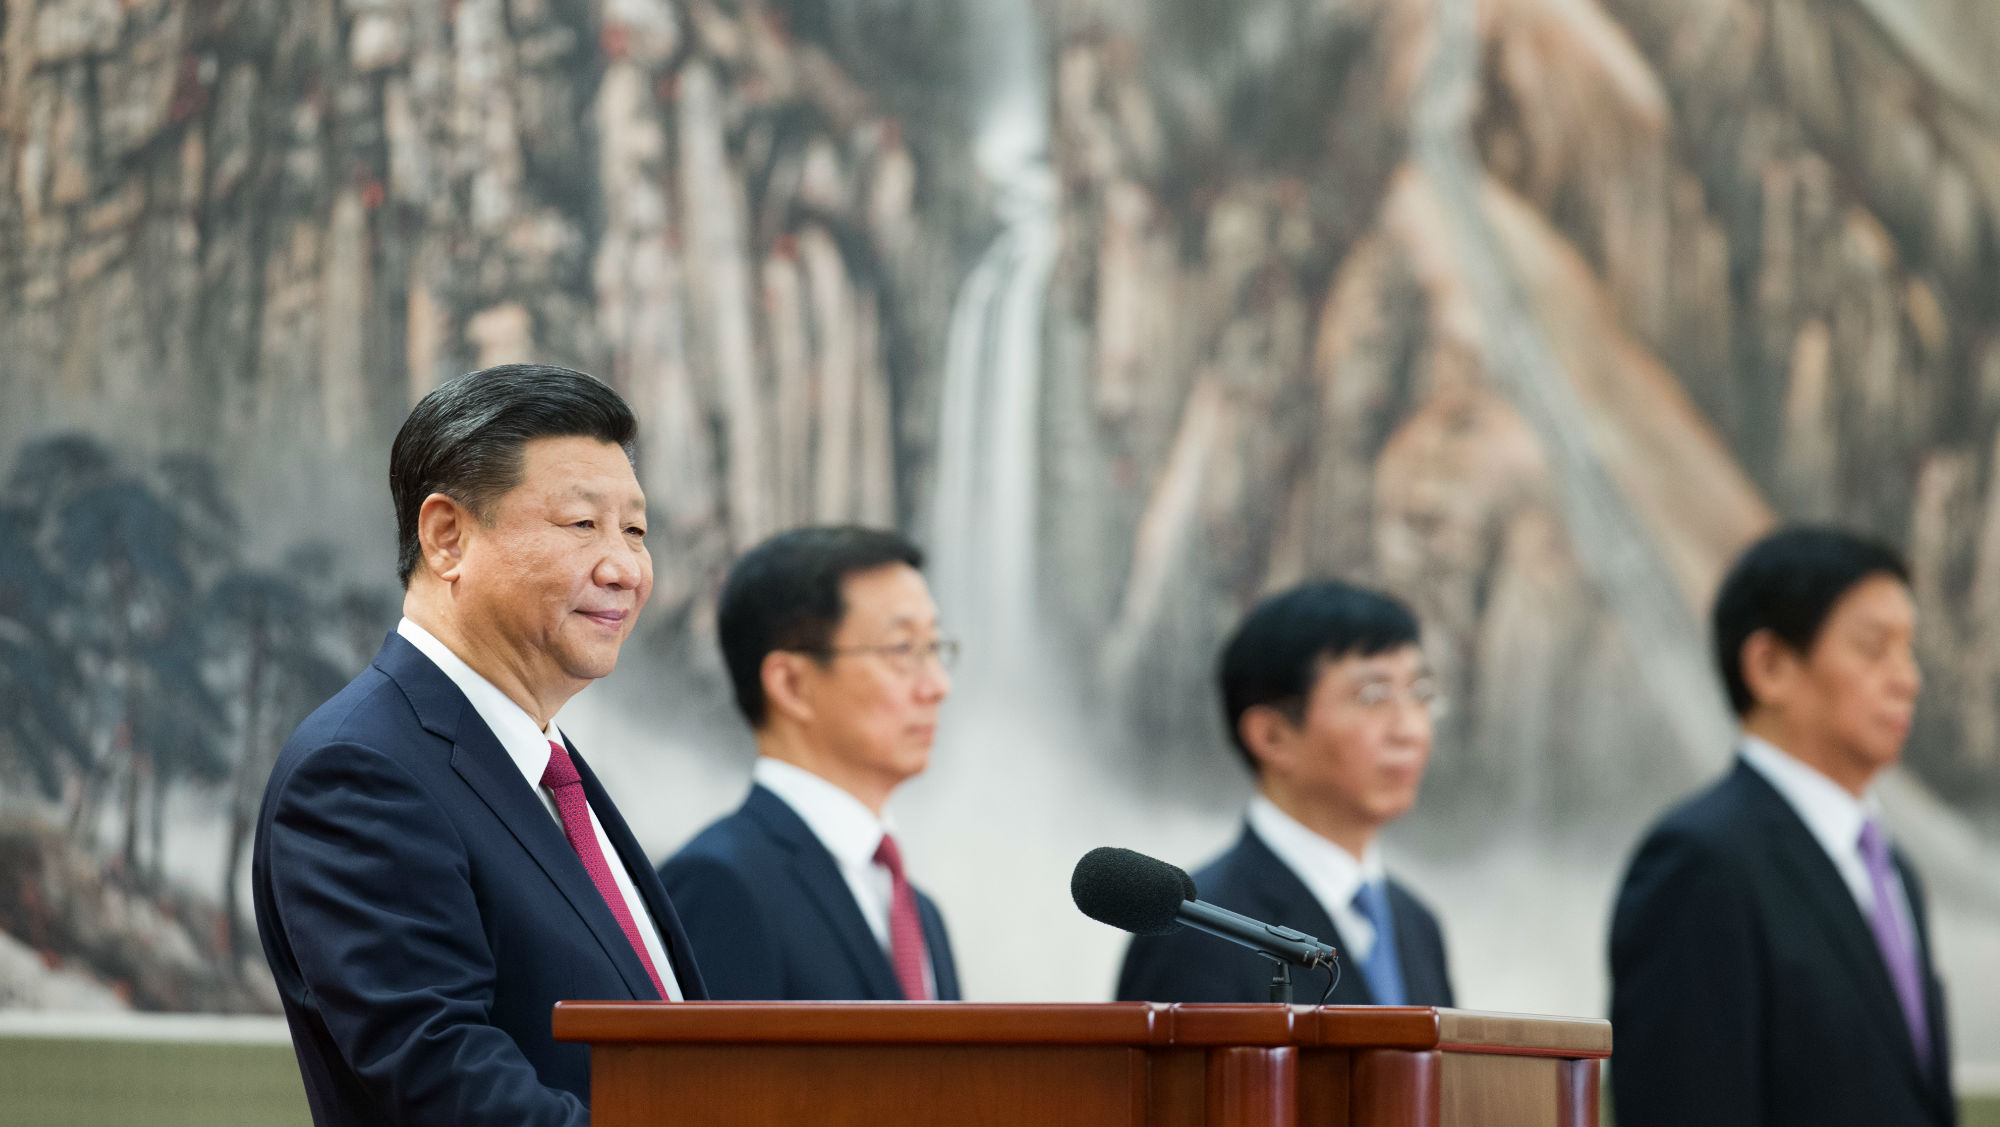 China Xi Jinping Politiburo